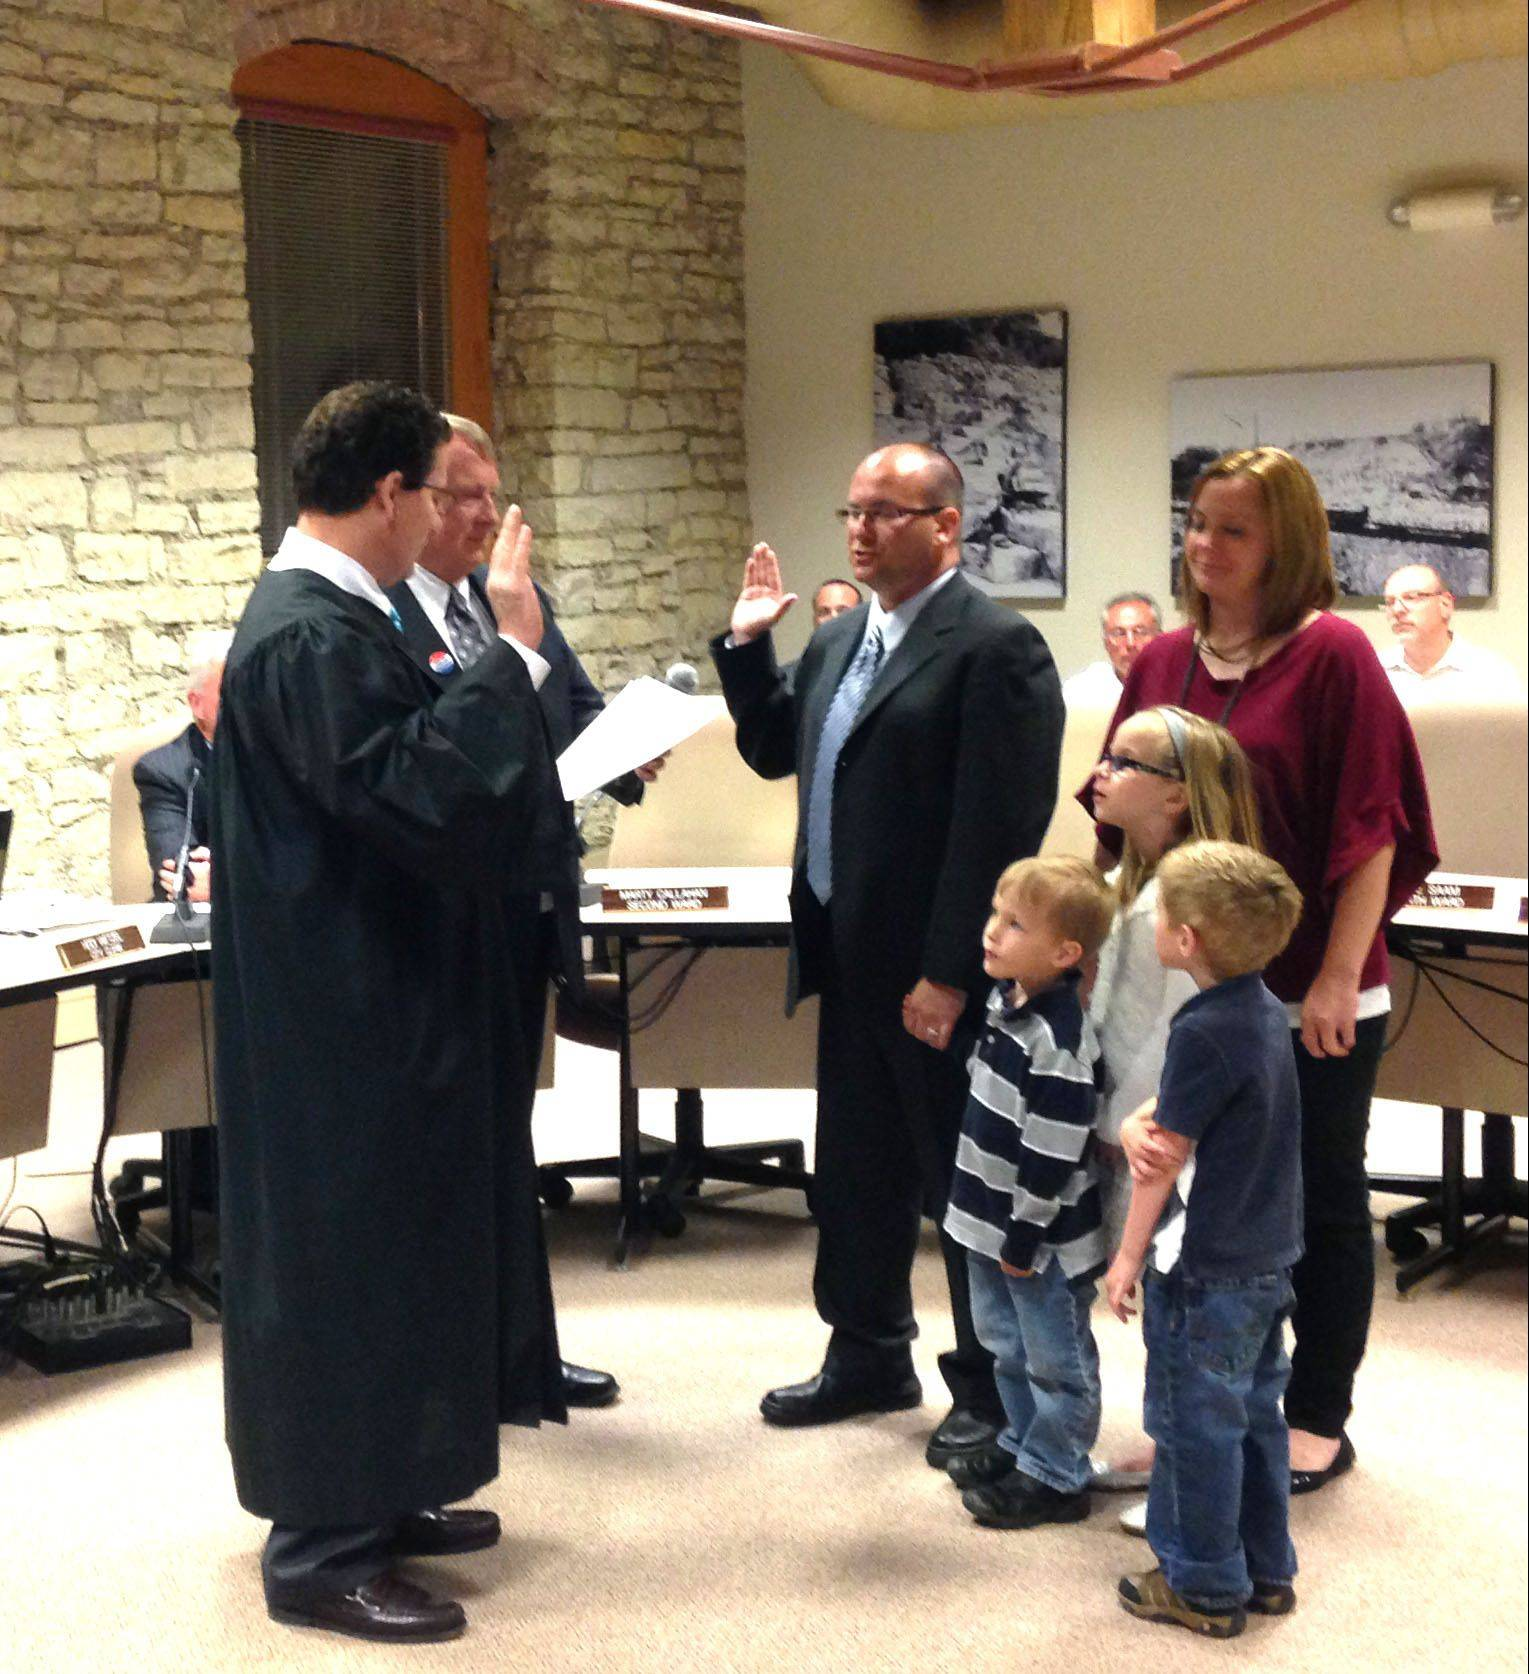 Kane County Circuit Judge Kevin Busch administers the oath of office Monday night to Martin Callahan, Batavia's new 2nd Ward alderman, while Callahan's family watches.